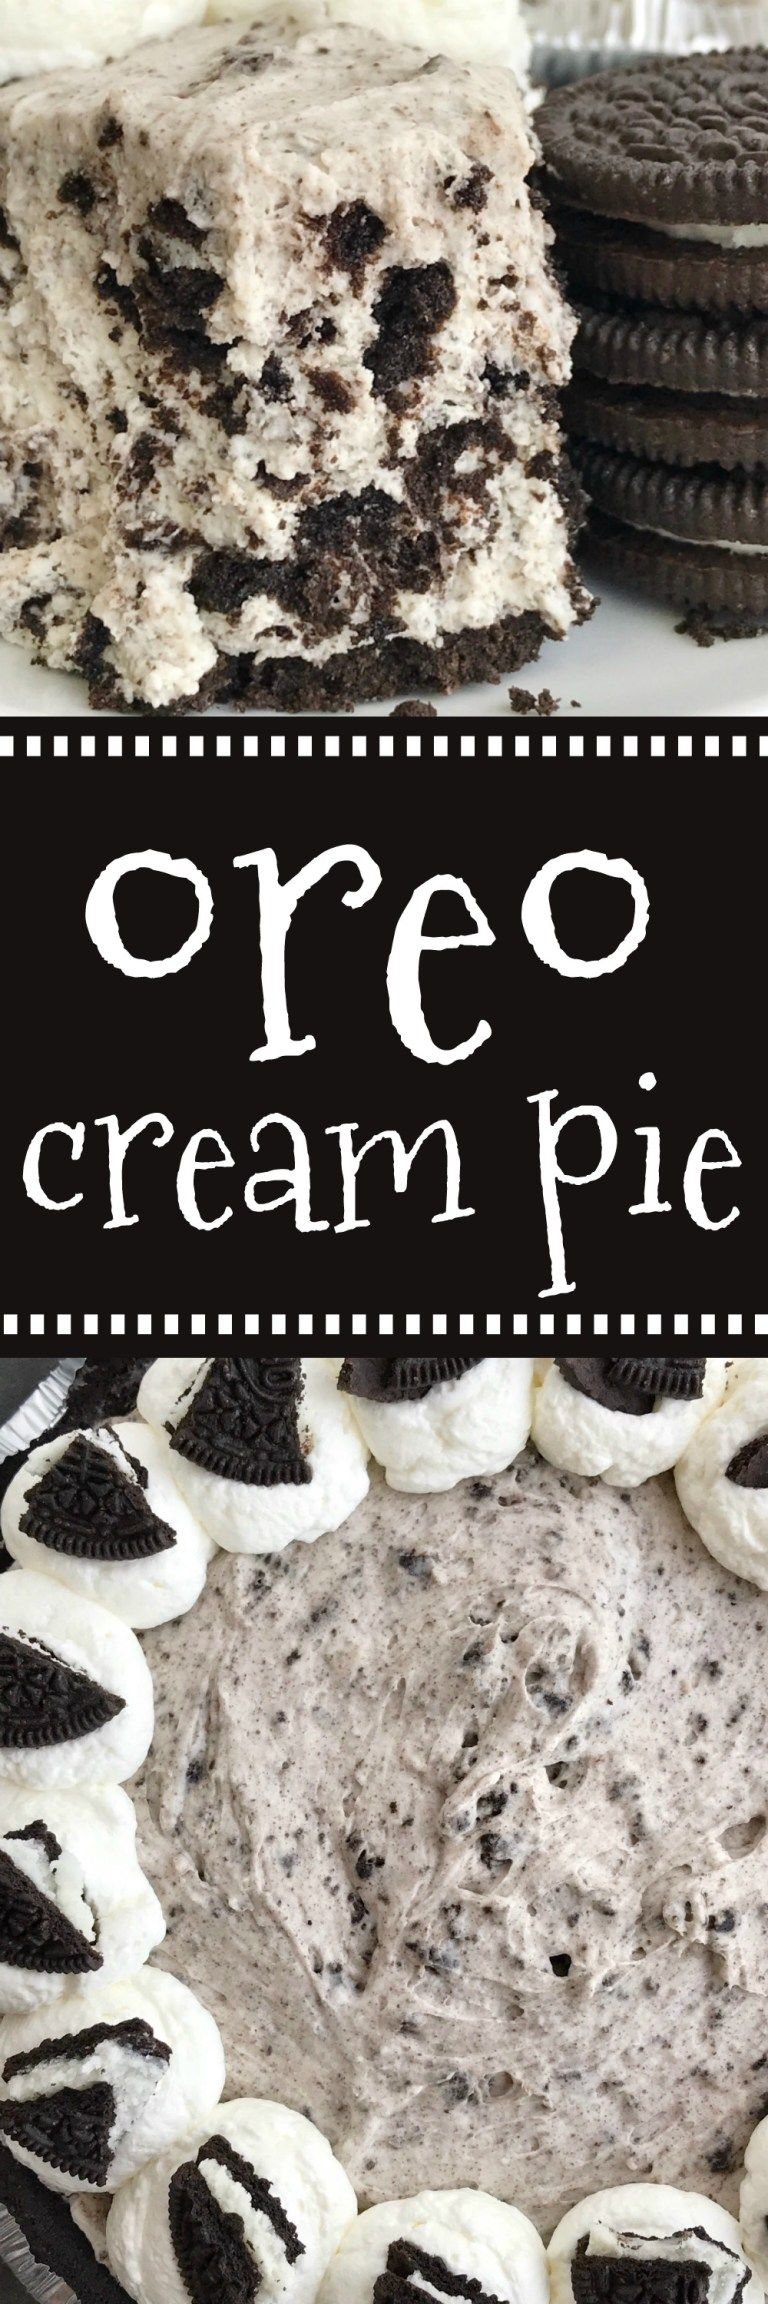 Oreo Cream Pie #sugarcreampie